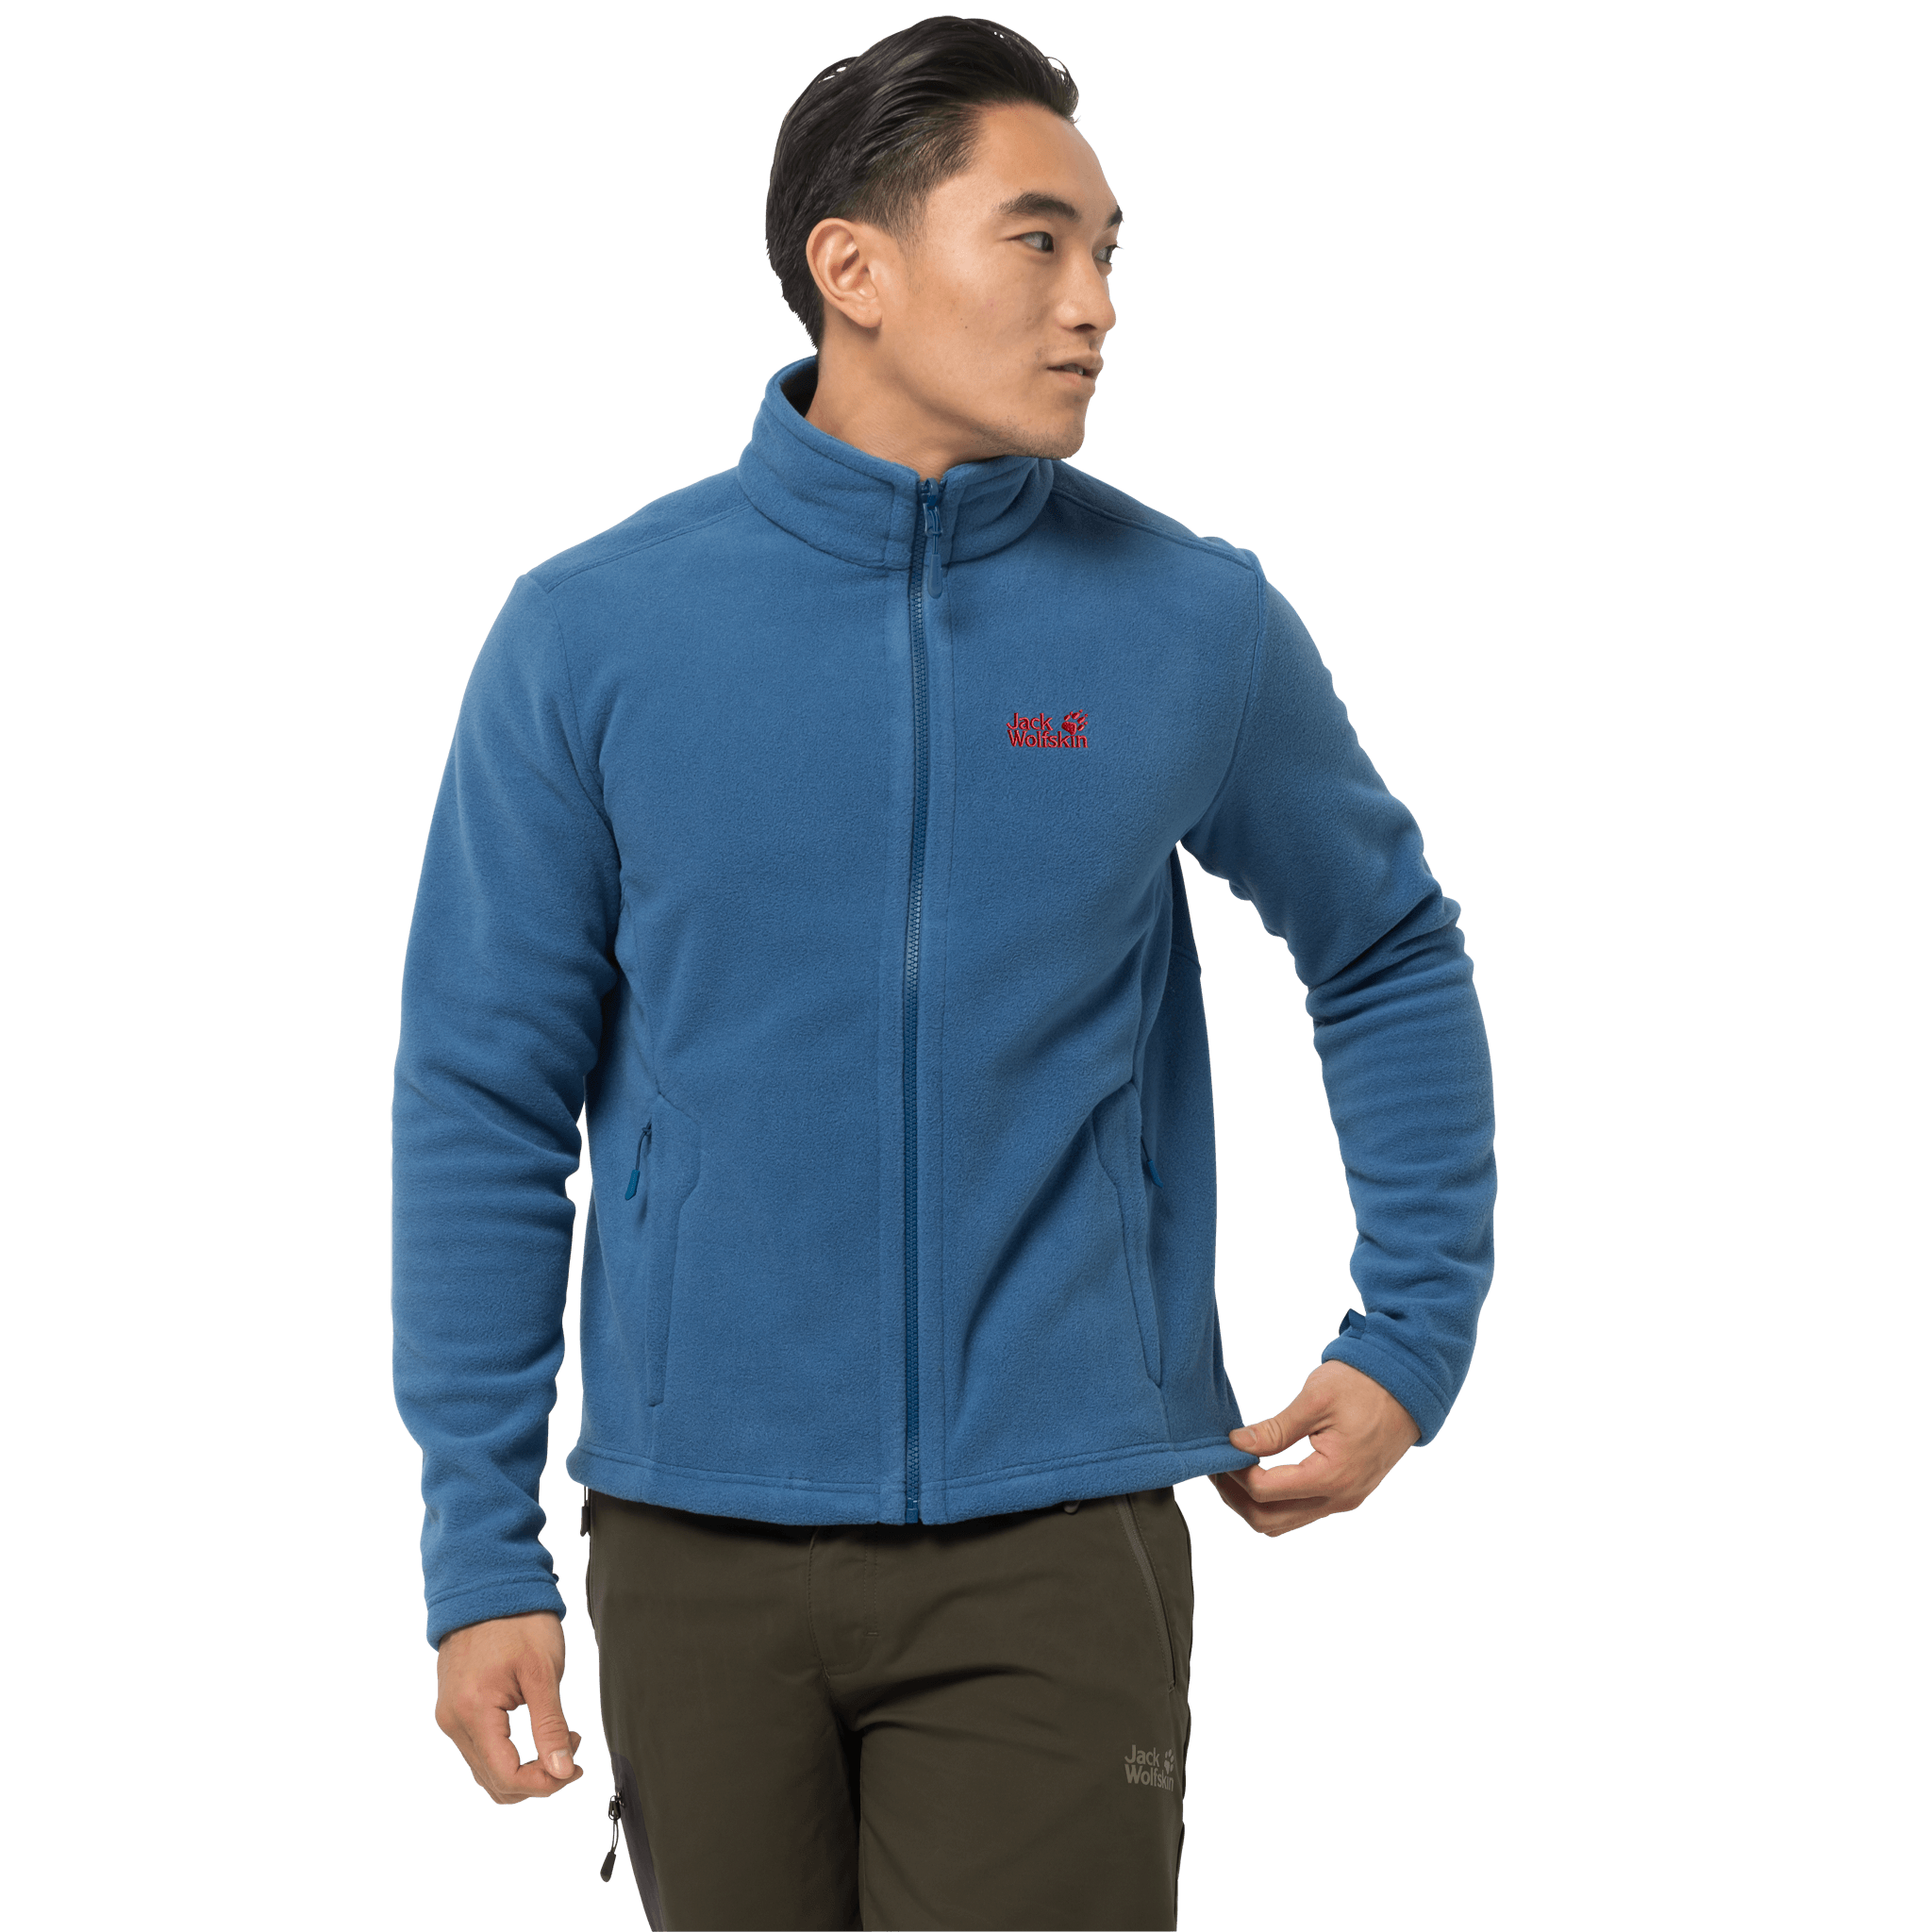 Indigo Blue Fleece Jacket Men